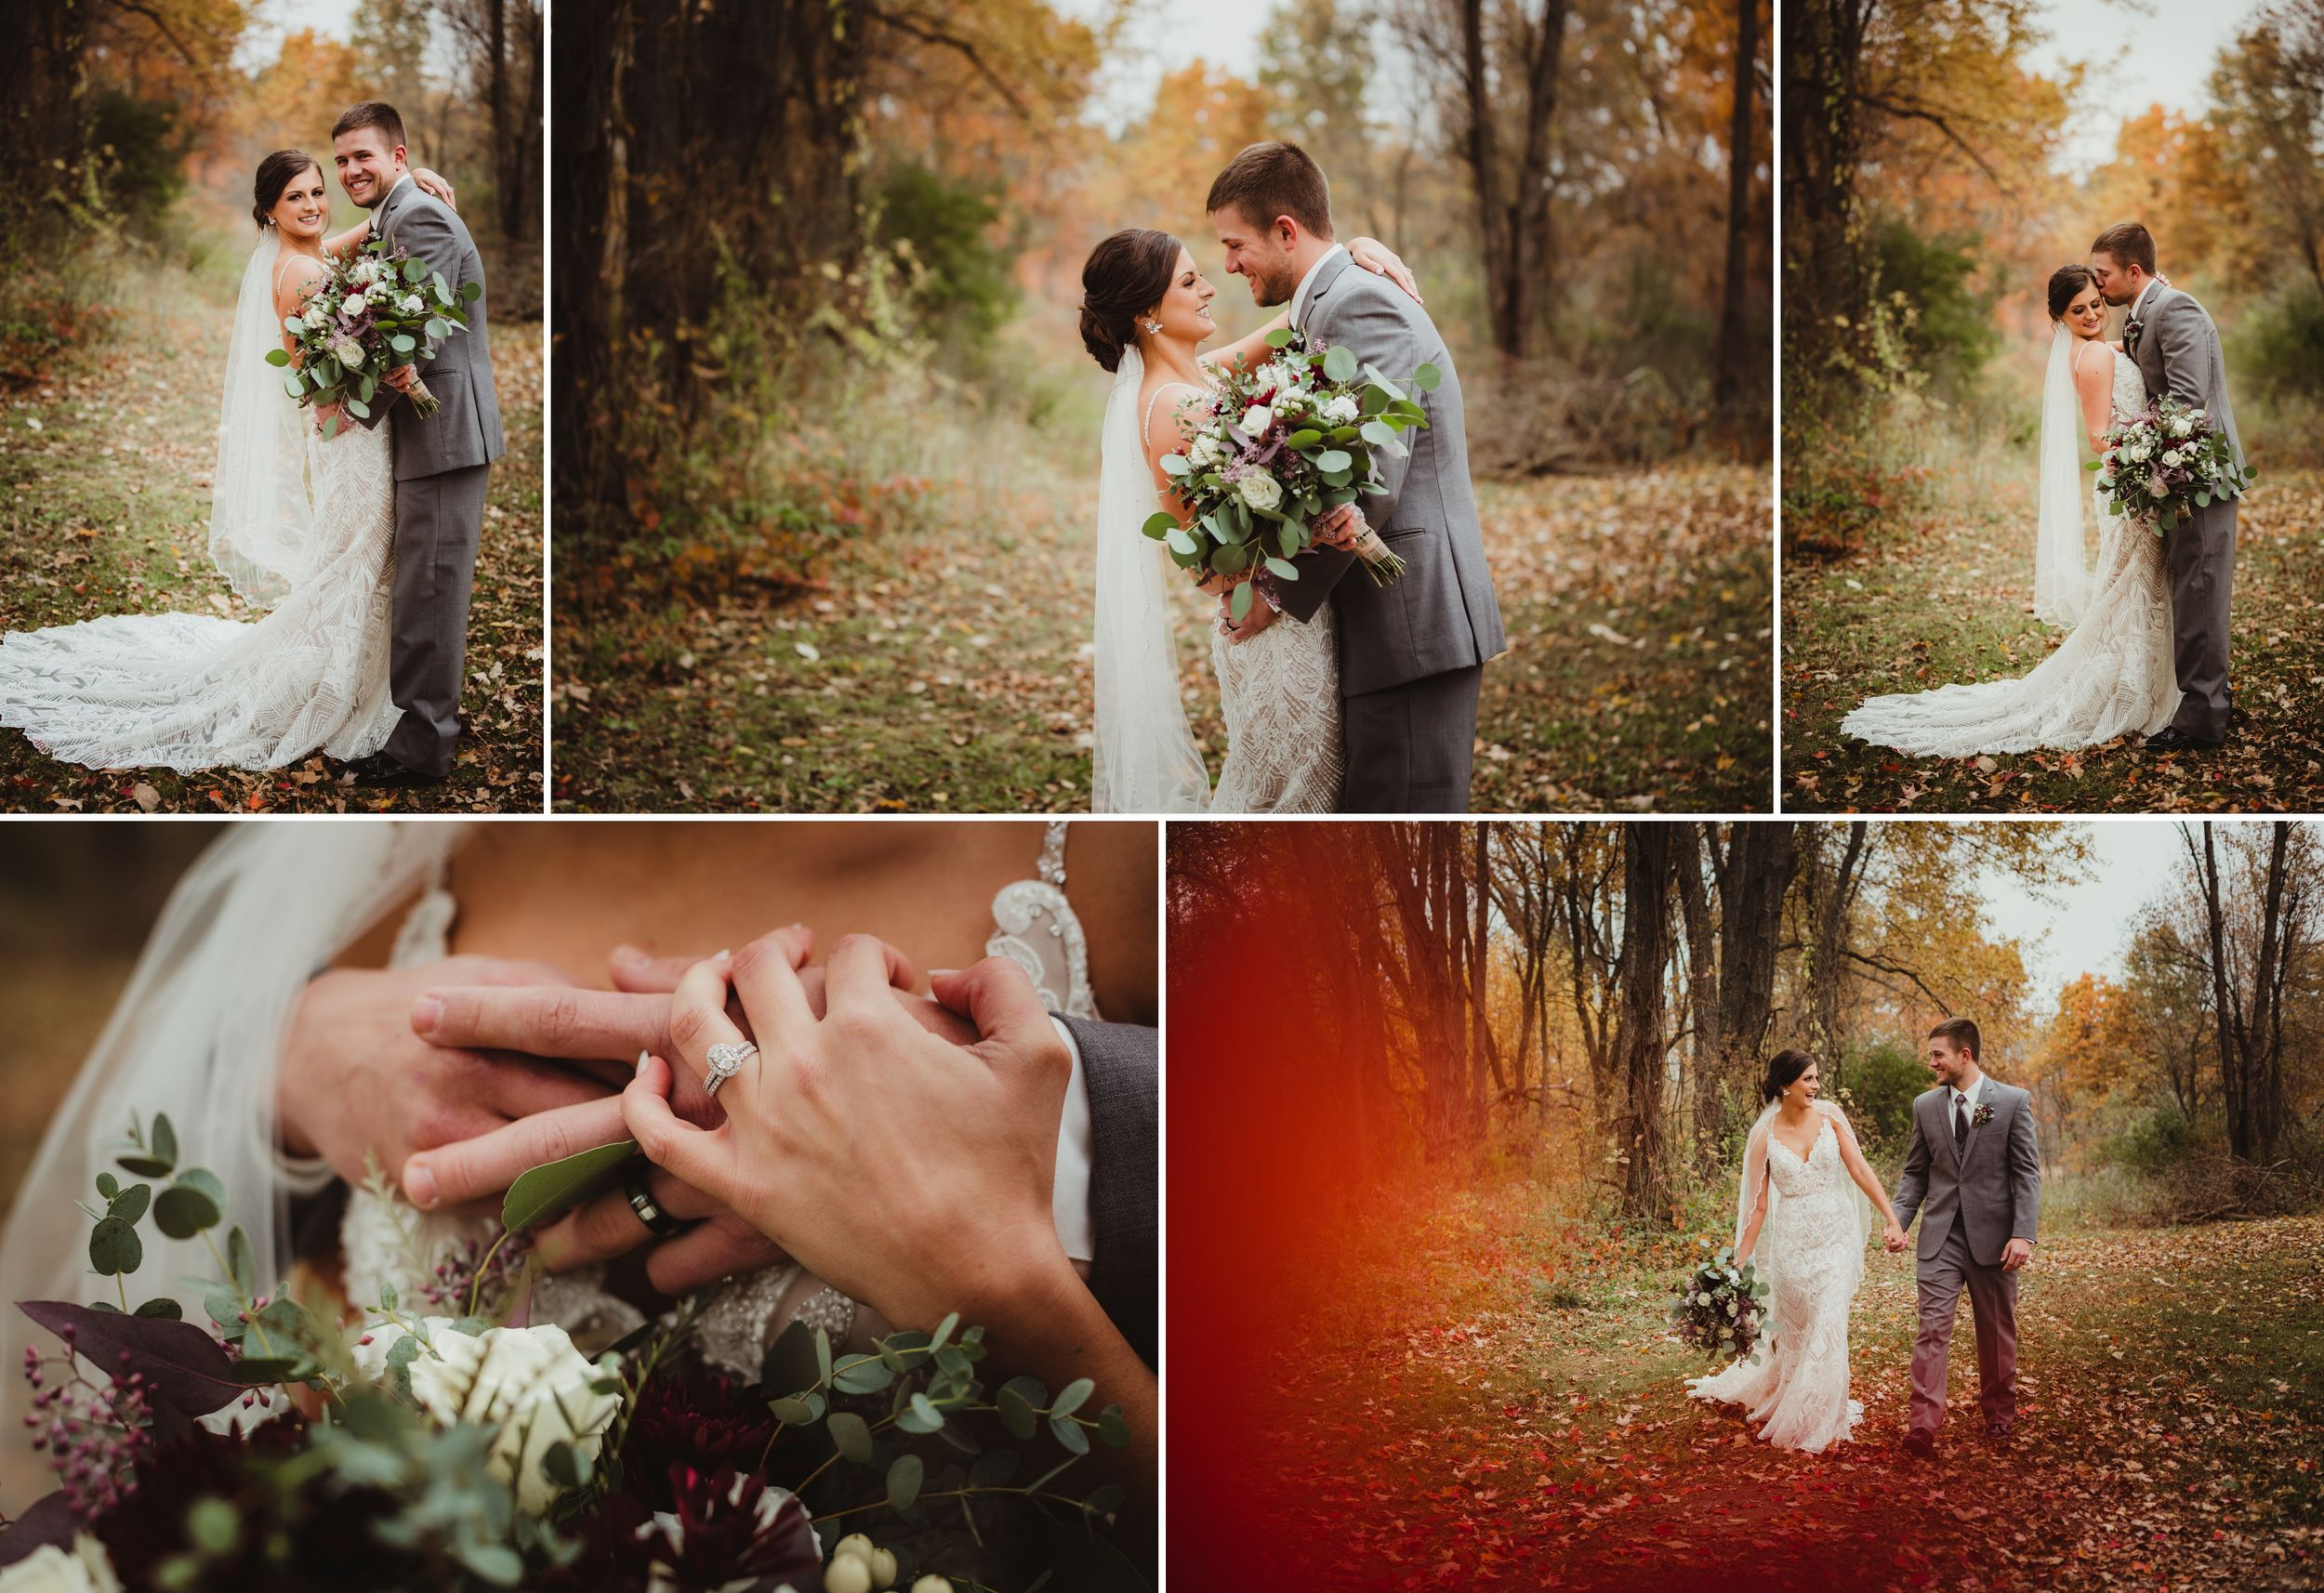 Bride and groom in various poses outside with brightly colored trees behind them and leaves on the ground.